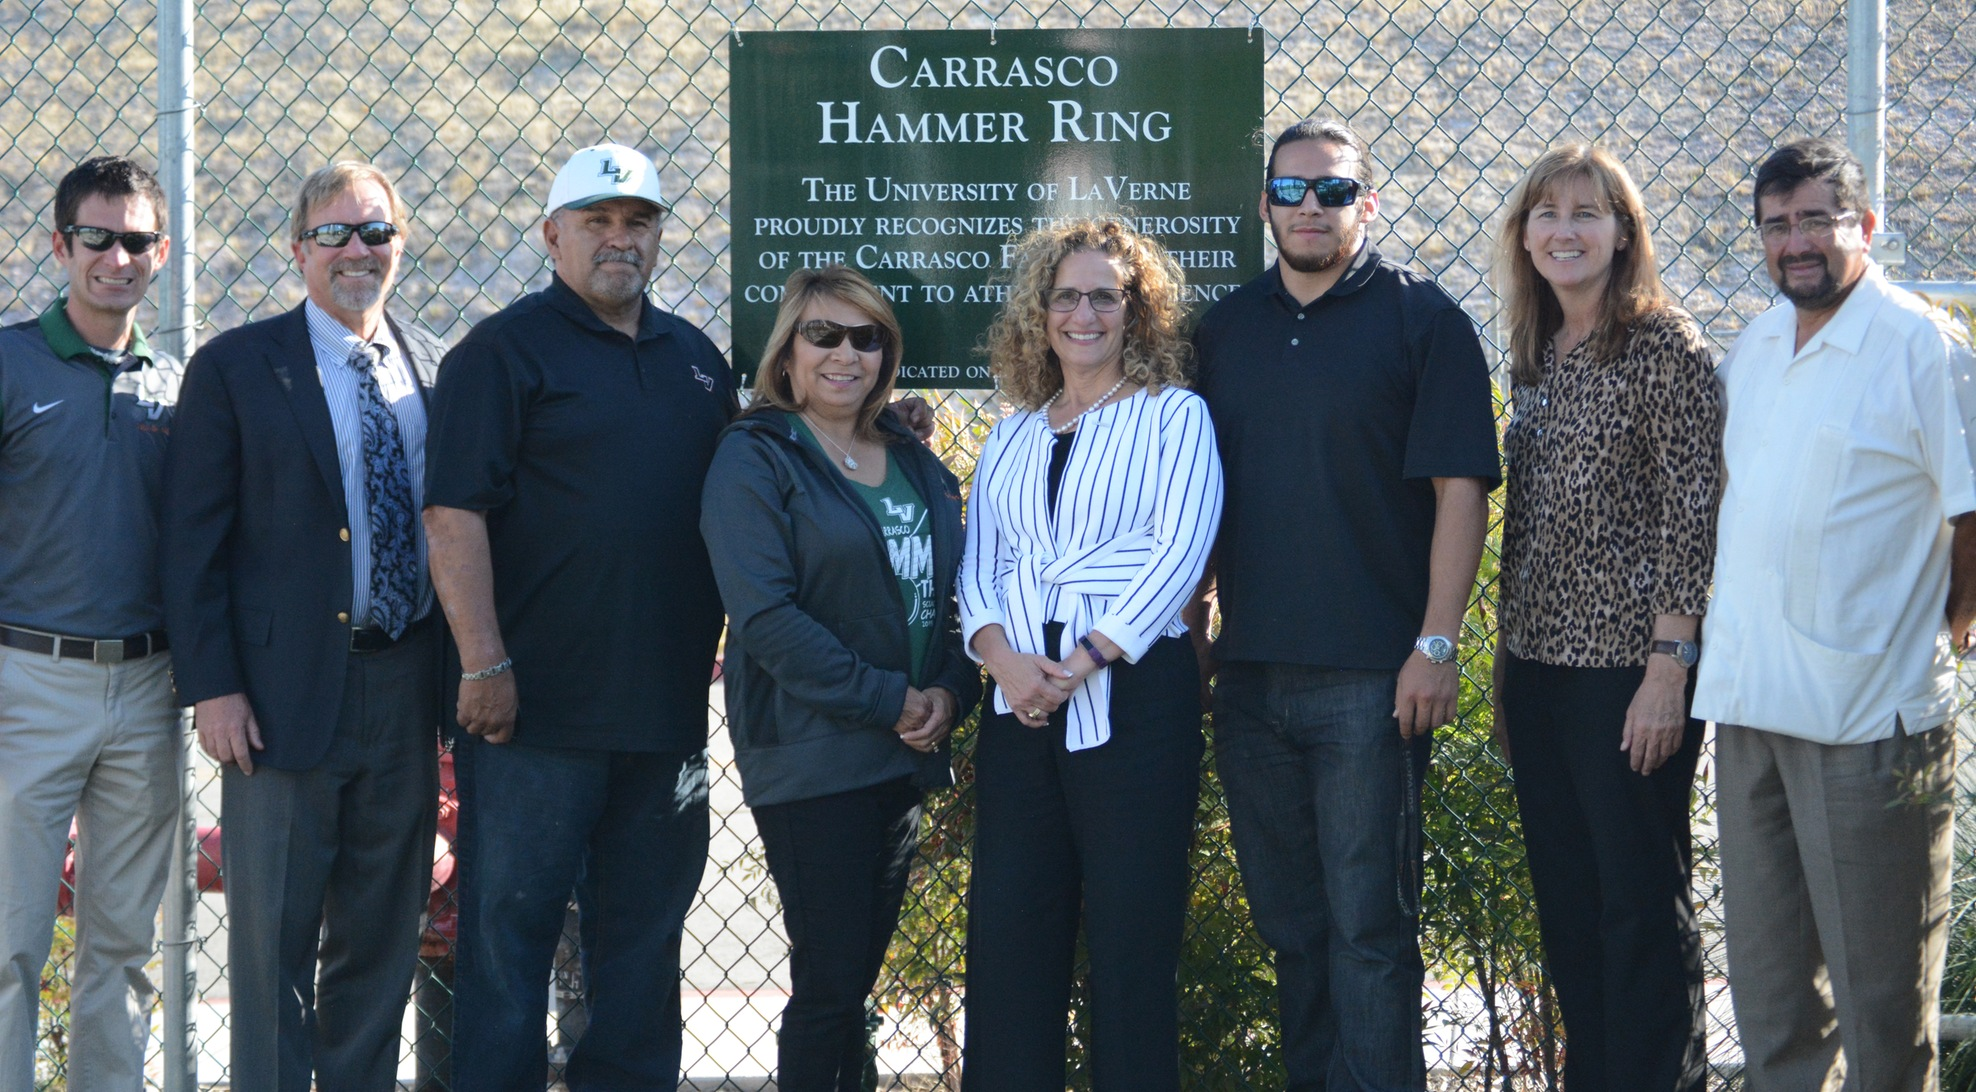 La Verne dedicates Carrasco Hammer Ring